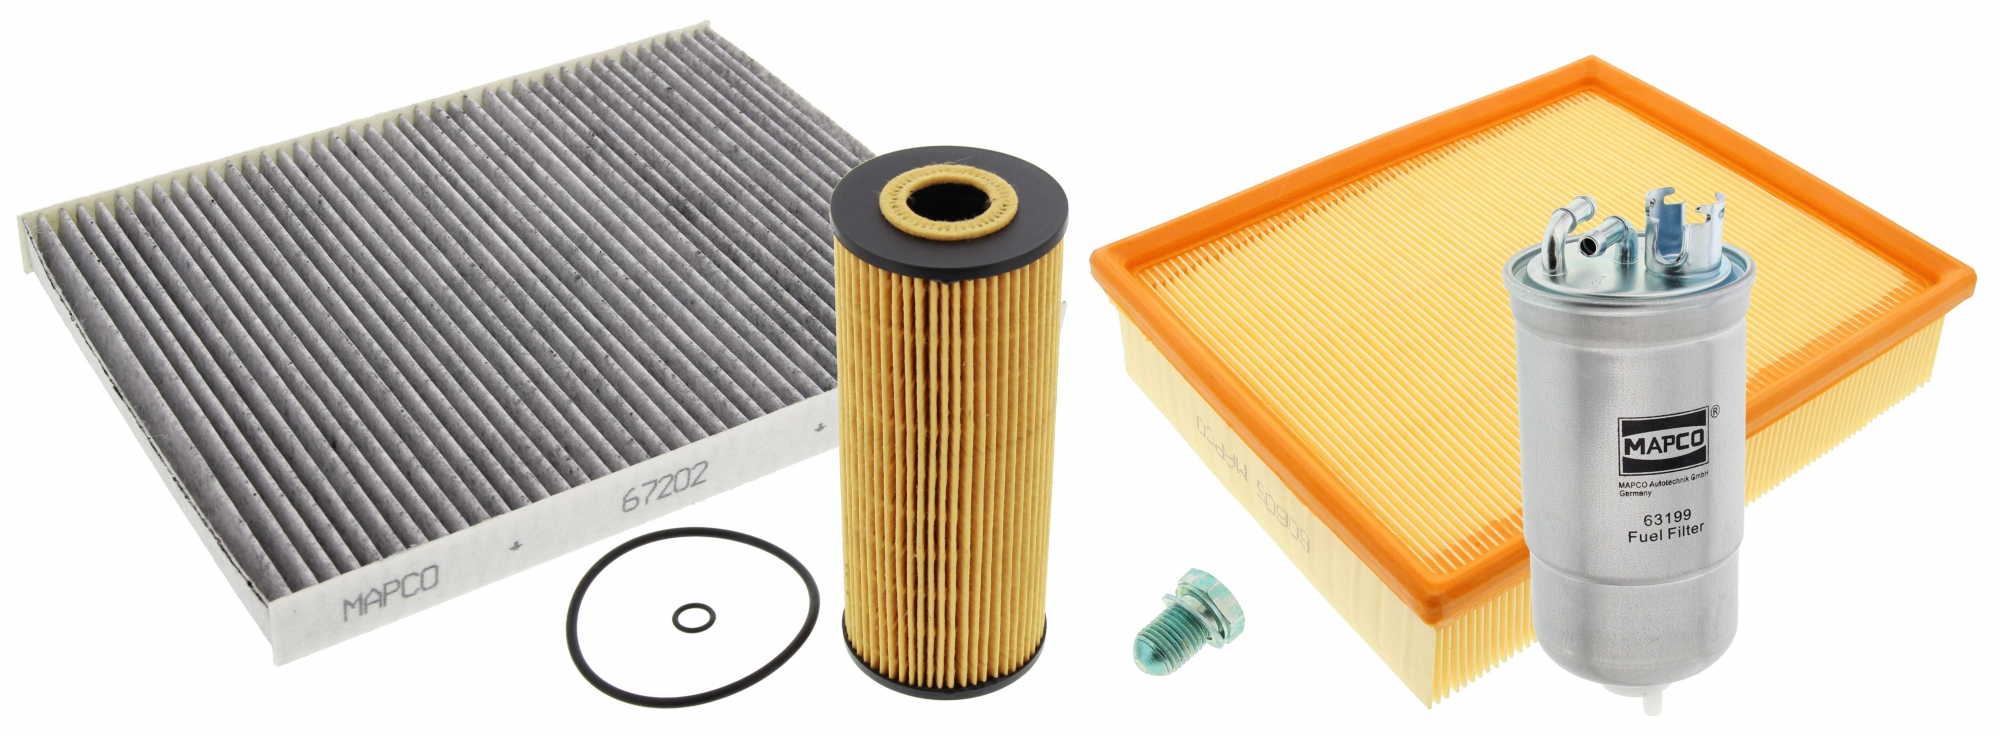 Mapco 68905 Filter Set 2001 Passat Fuel